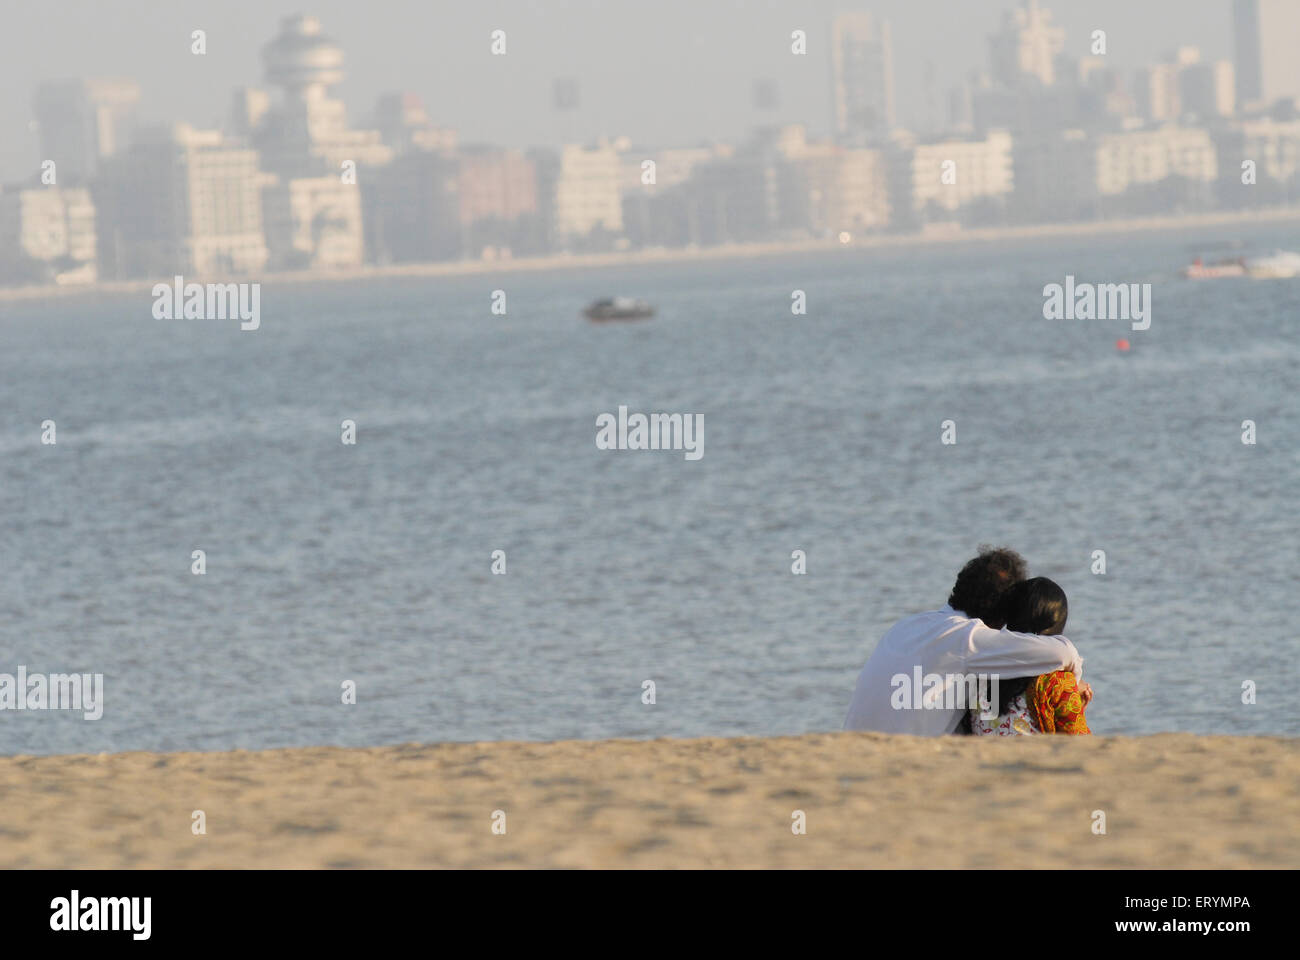 Couples Privacy Stock Photos & Couples Privacy Stock Images - Alamy